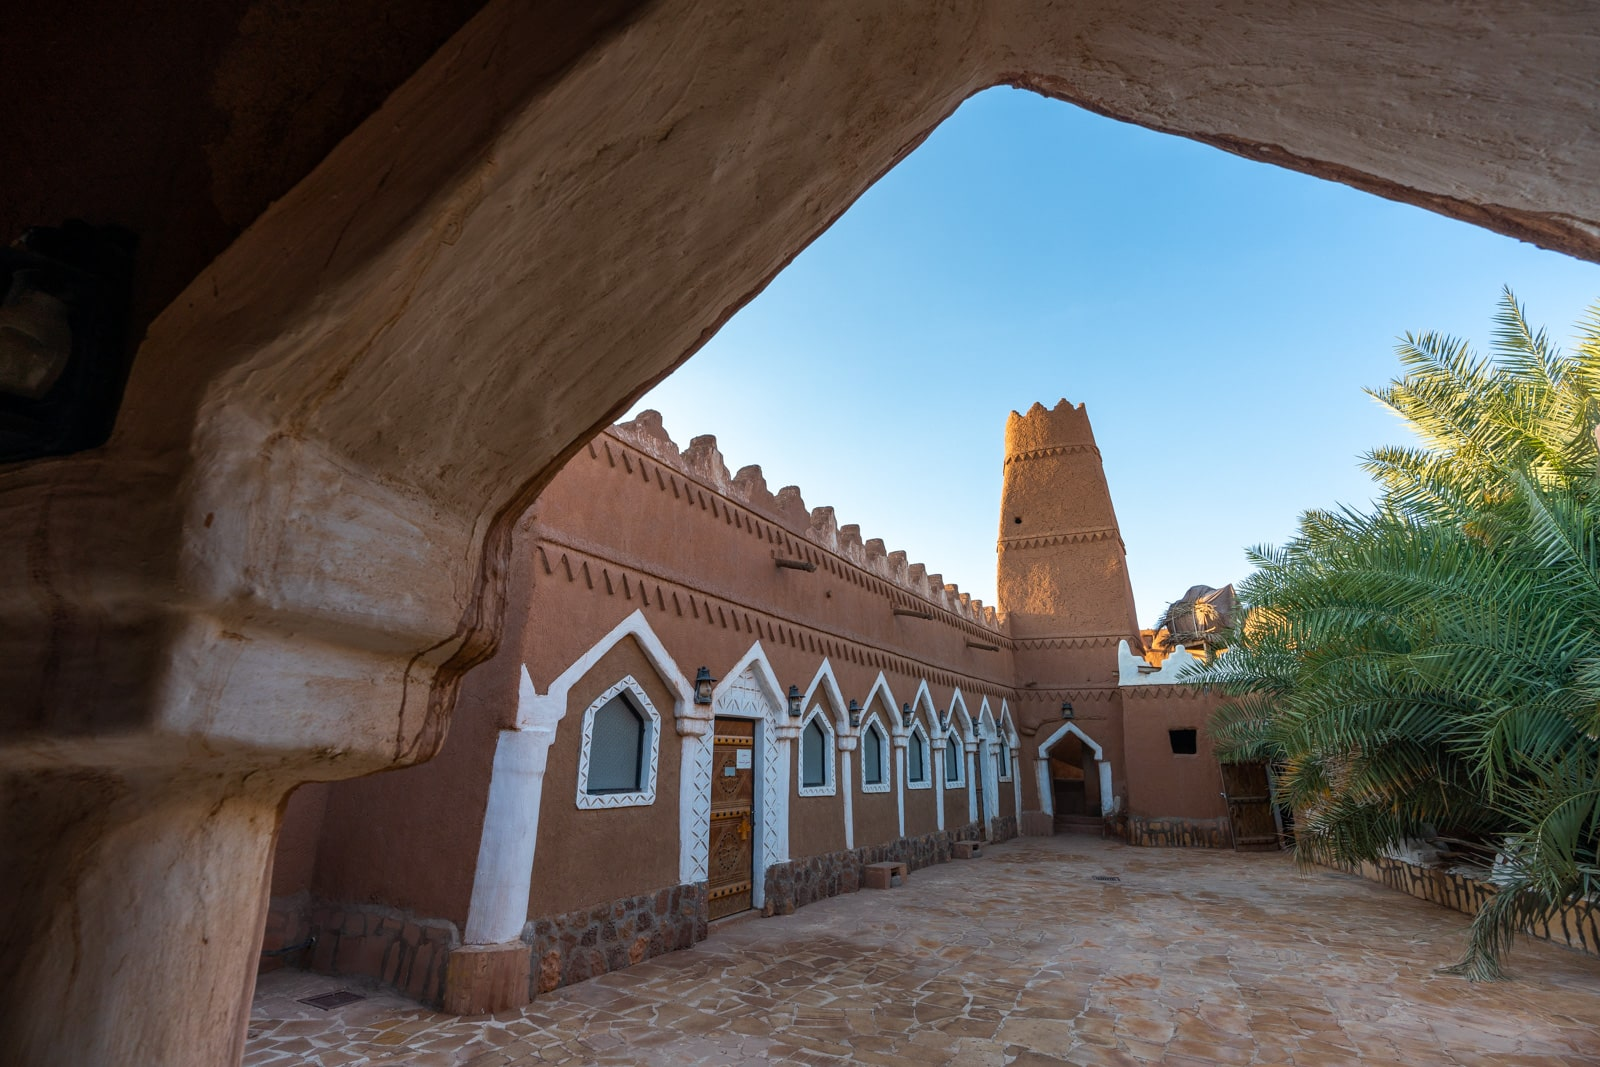 Mosque in Ushaiger village, Saudi Arabia